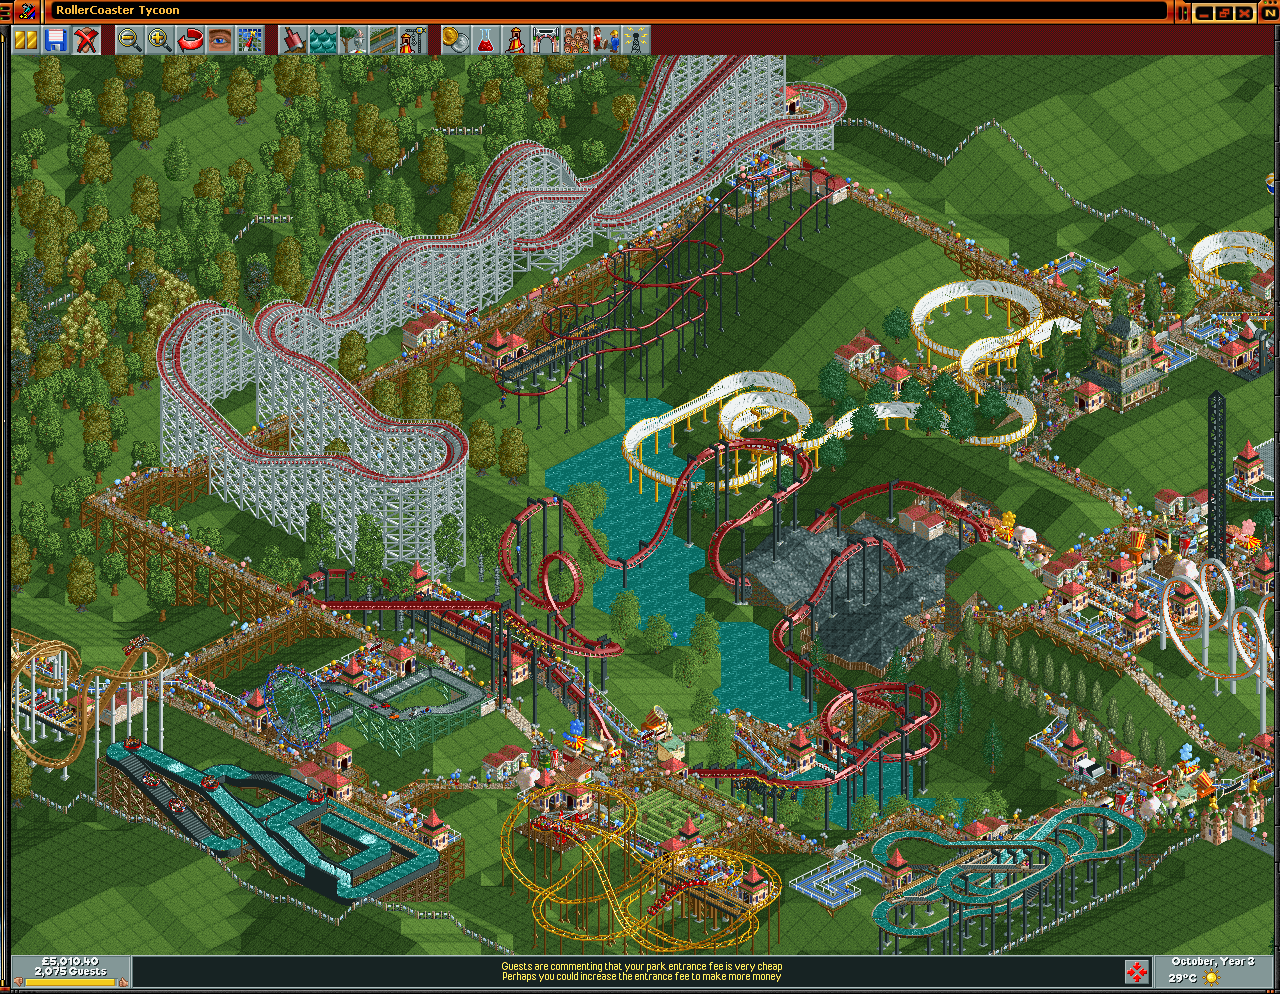 Roller coaster tycoon nude patch hentia image